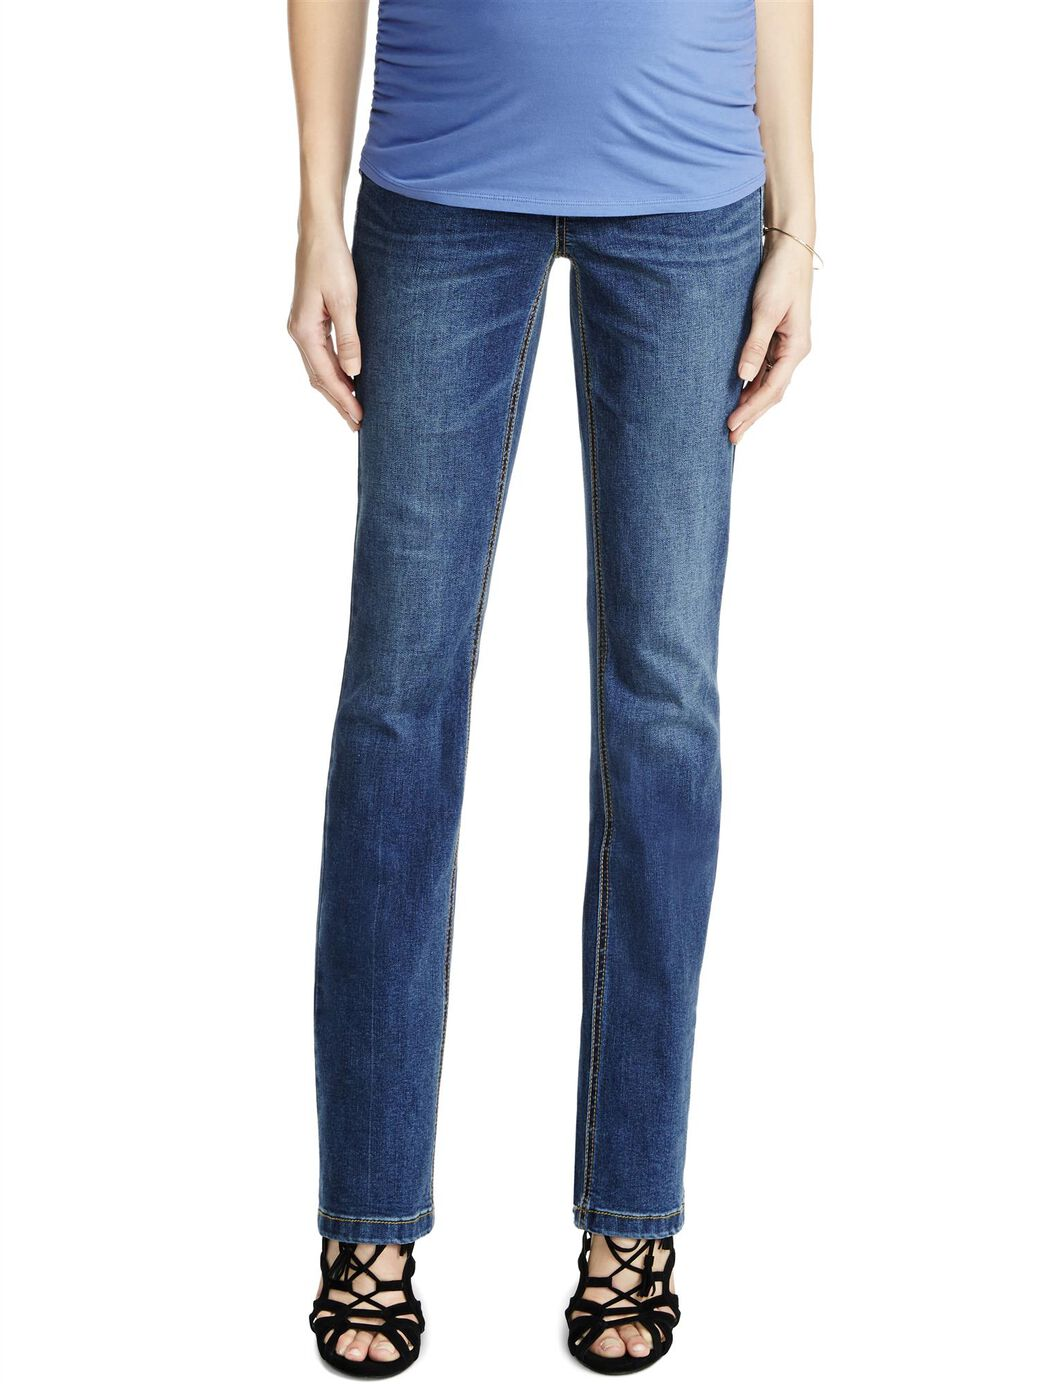 Jessica Simpson Secret Fit Belly Skinny Boot Maternity Jeans at Motherhood Maternity in Victor, NY | Tuggl